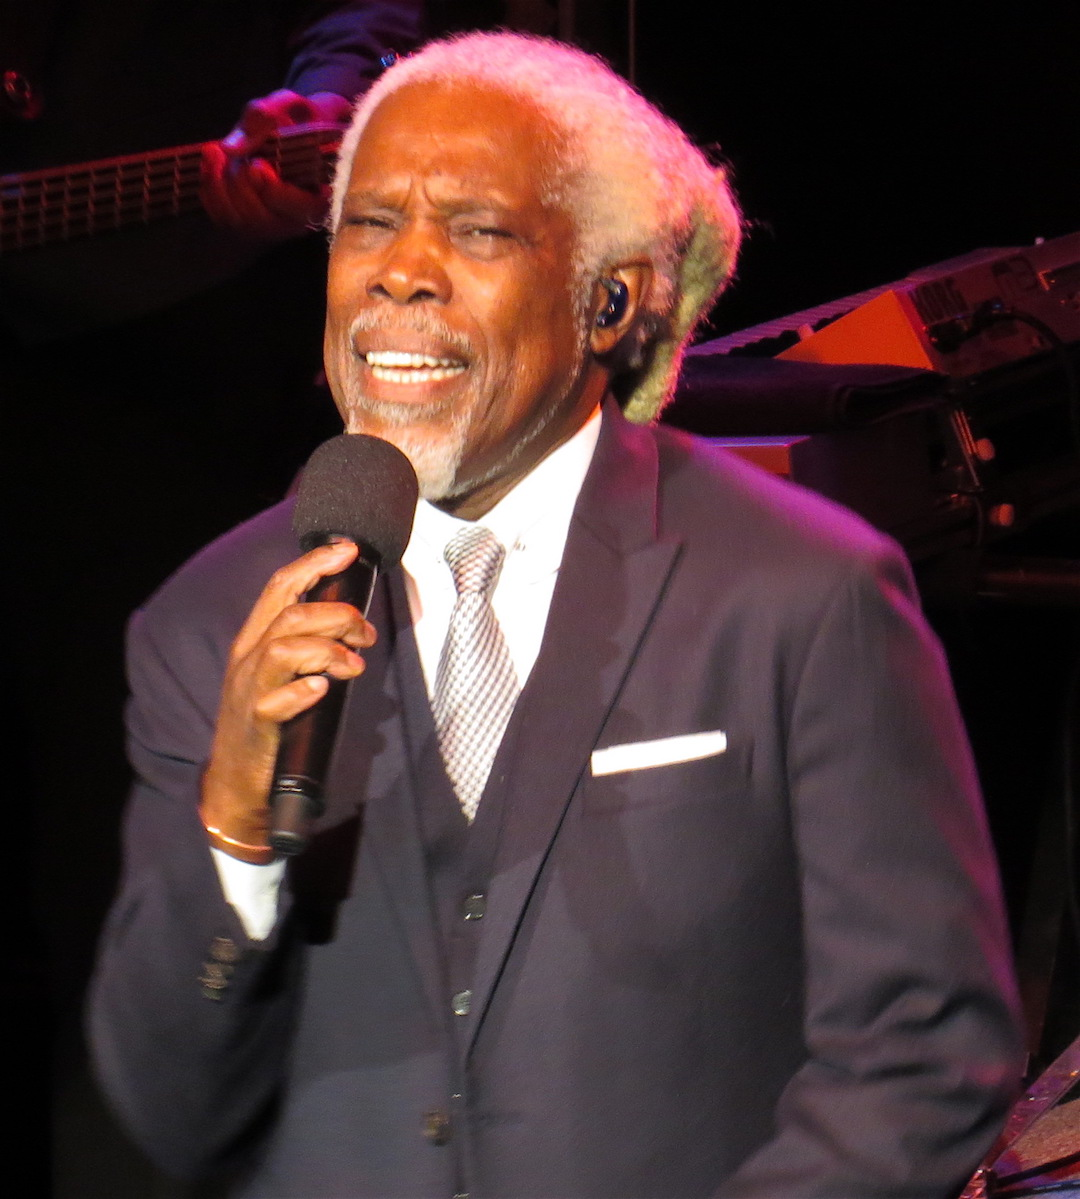 billy ocean - photo #21